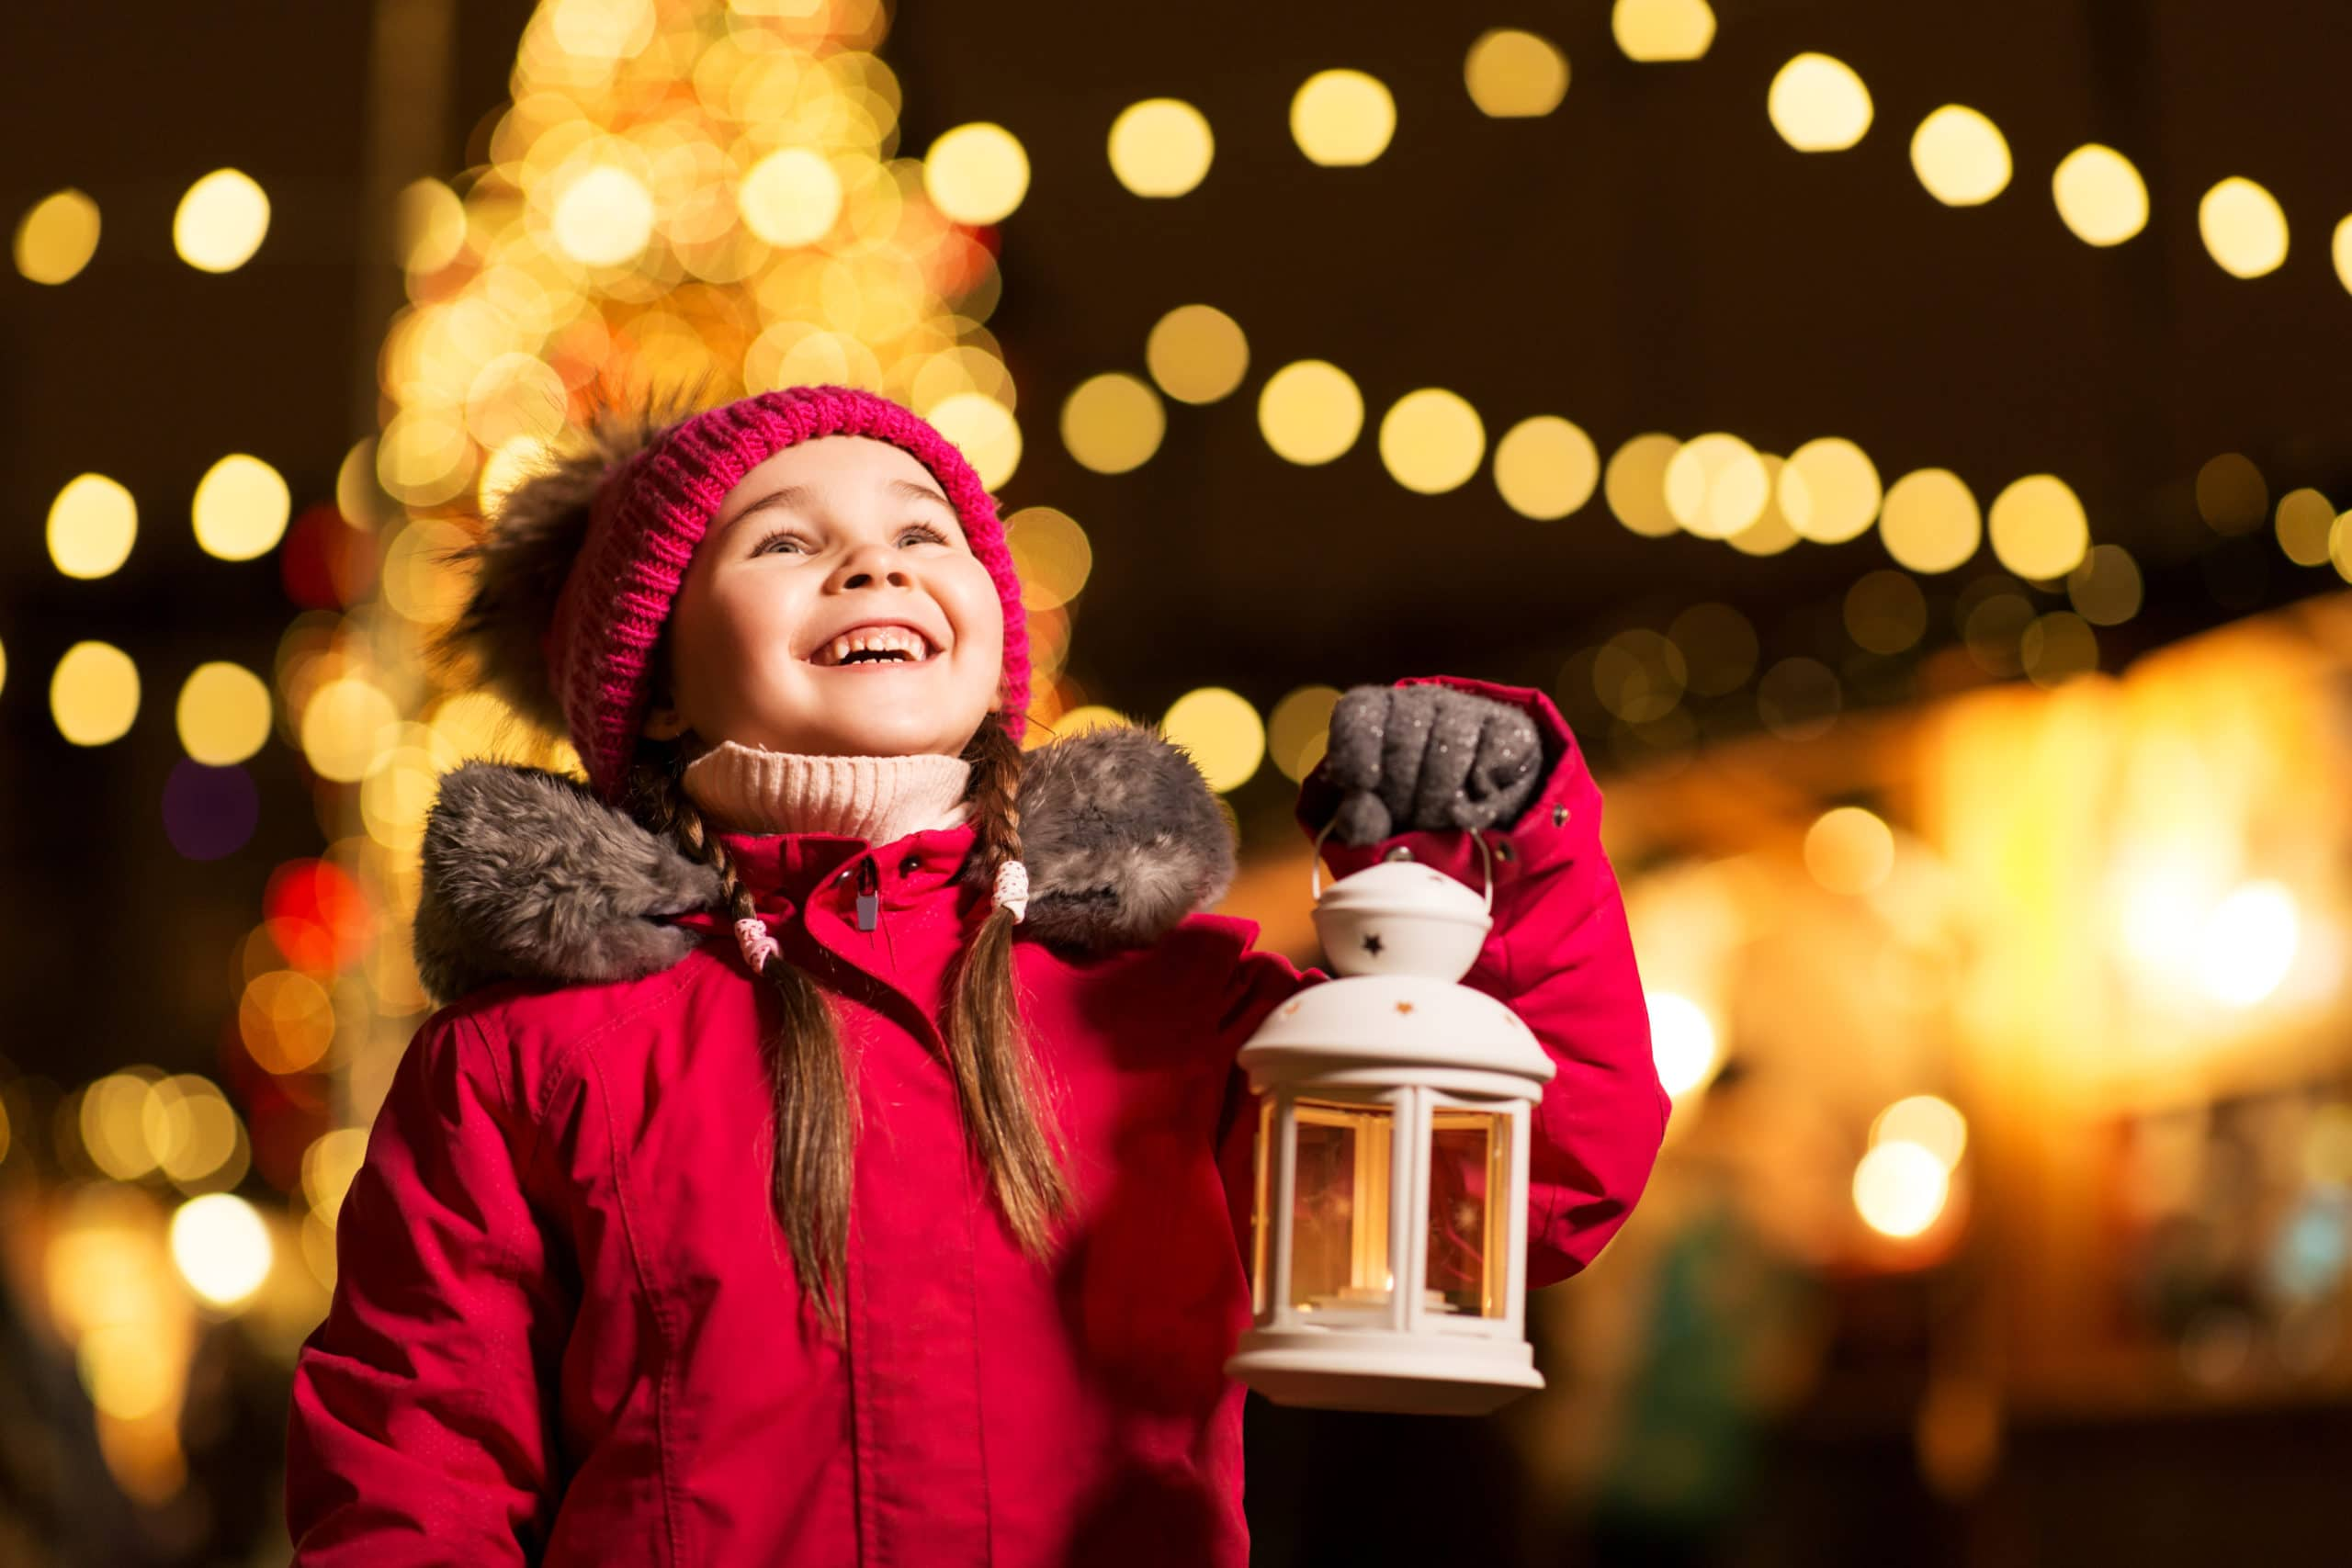 A young girl at a holiday lights display